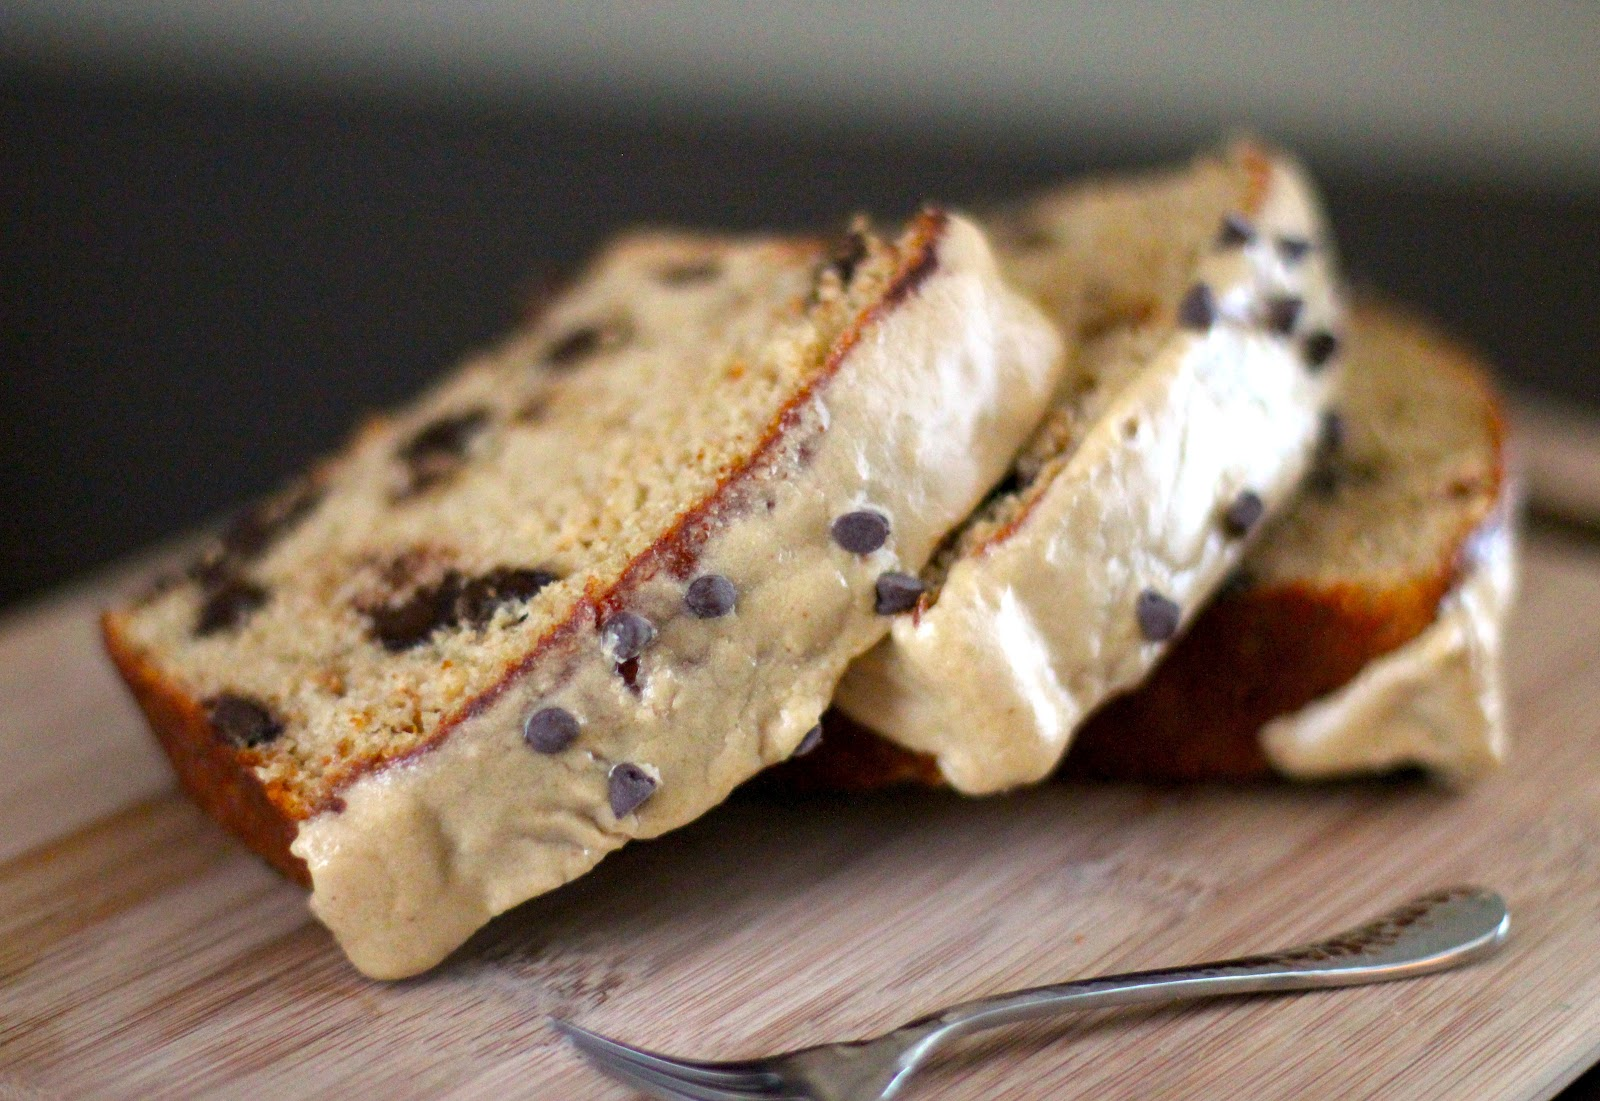 ... Chocolate Chip Peanut Butter Pound Cake with a Special Peanut Butter